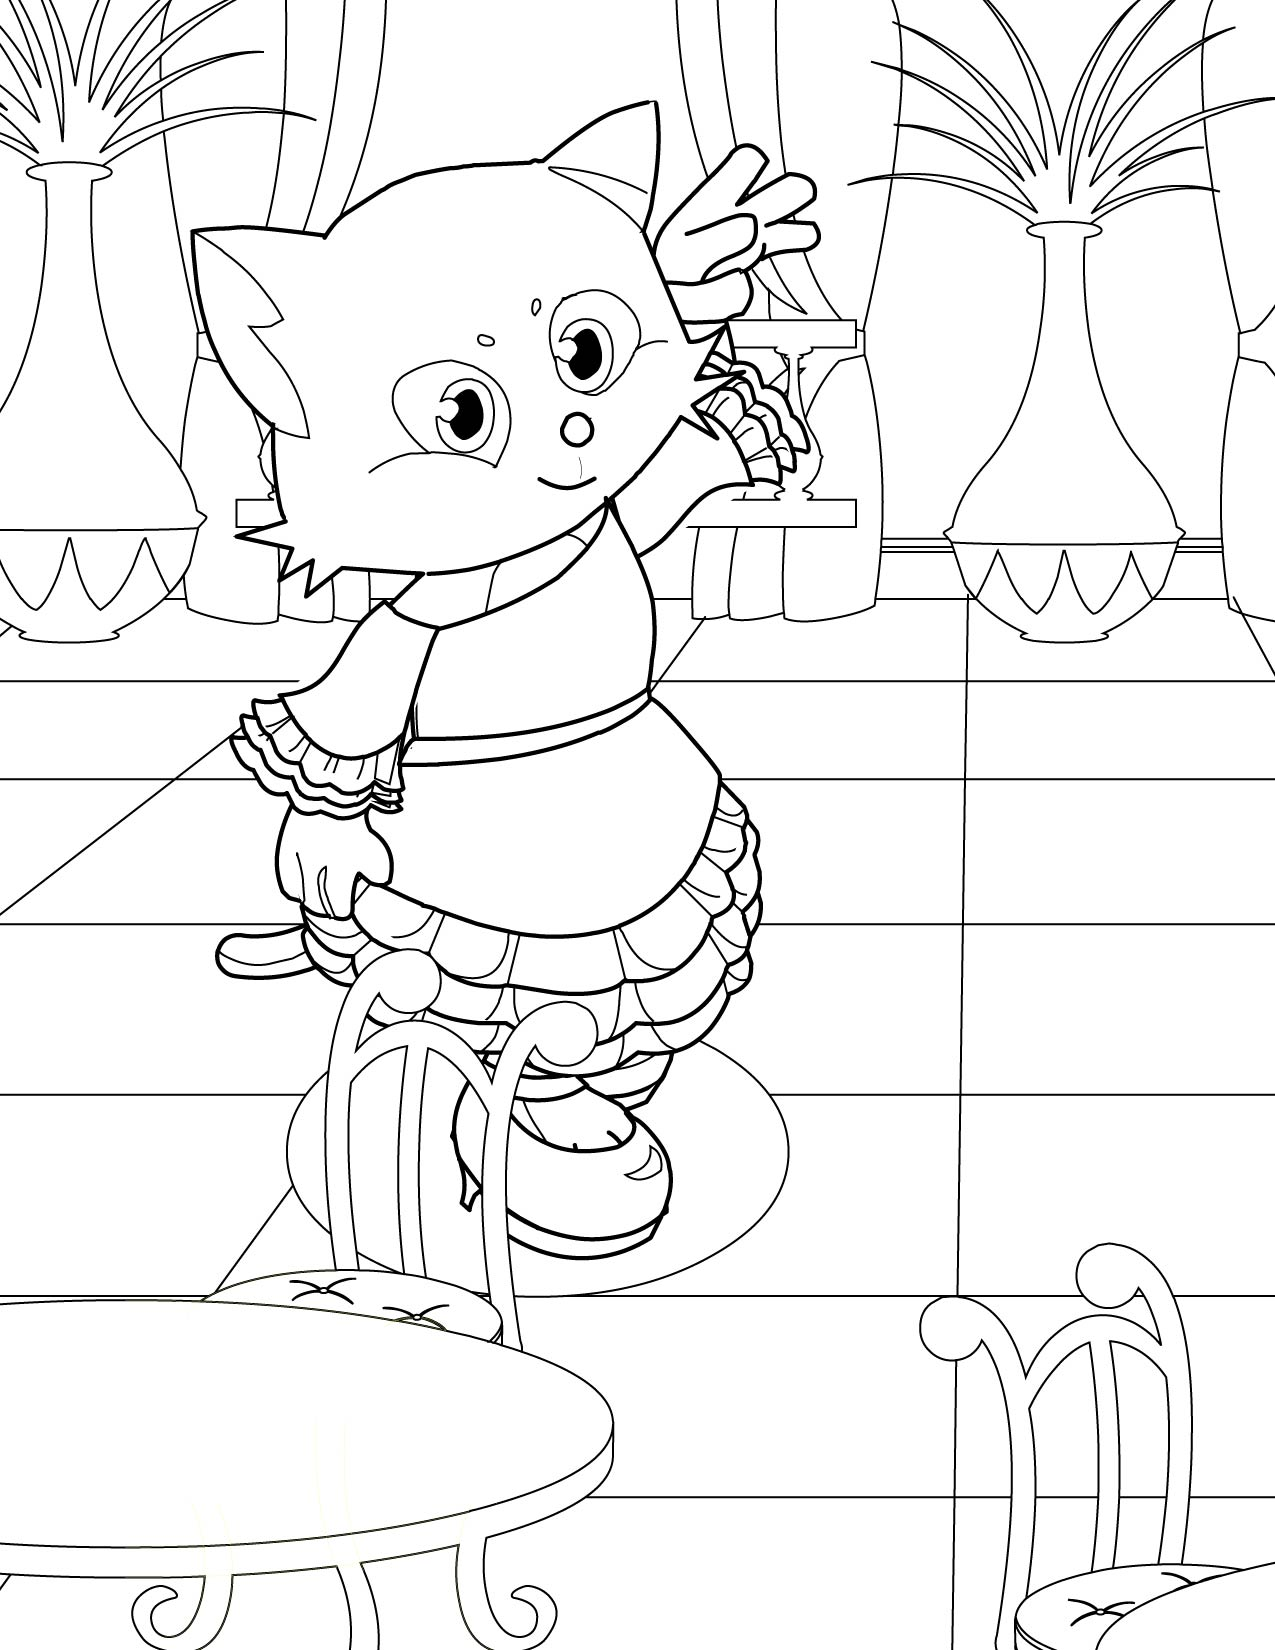 coloring pages flamenco dancers - photo#7